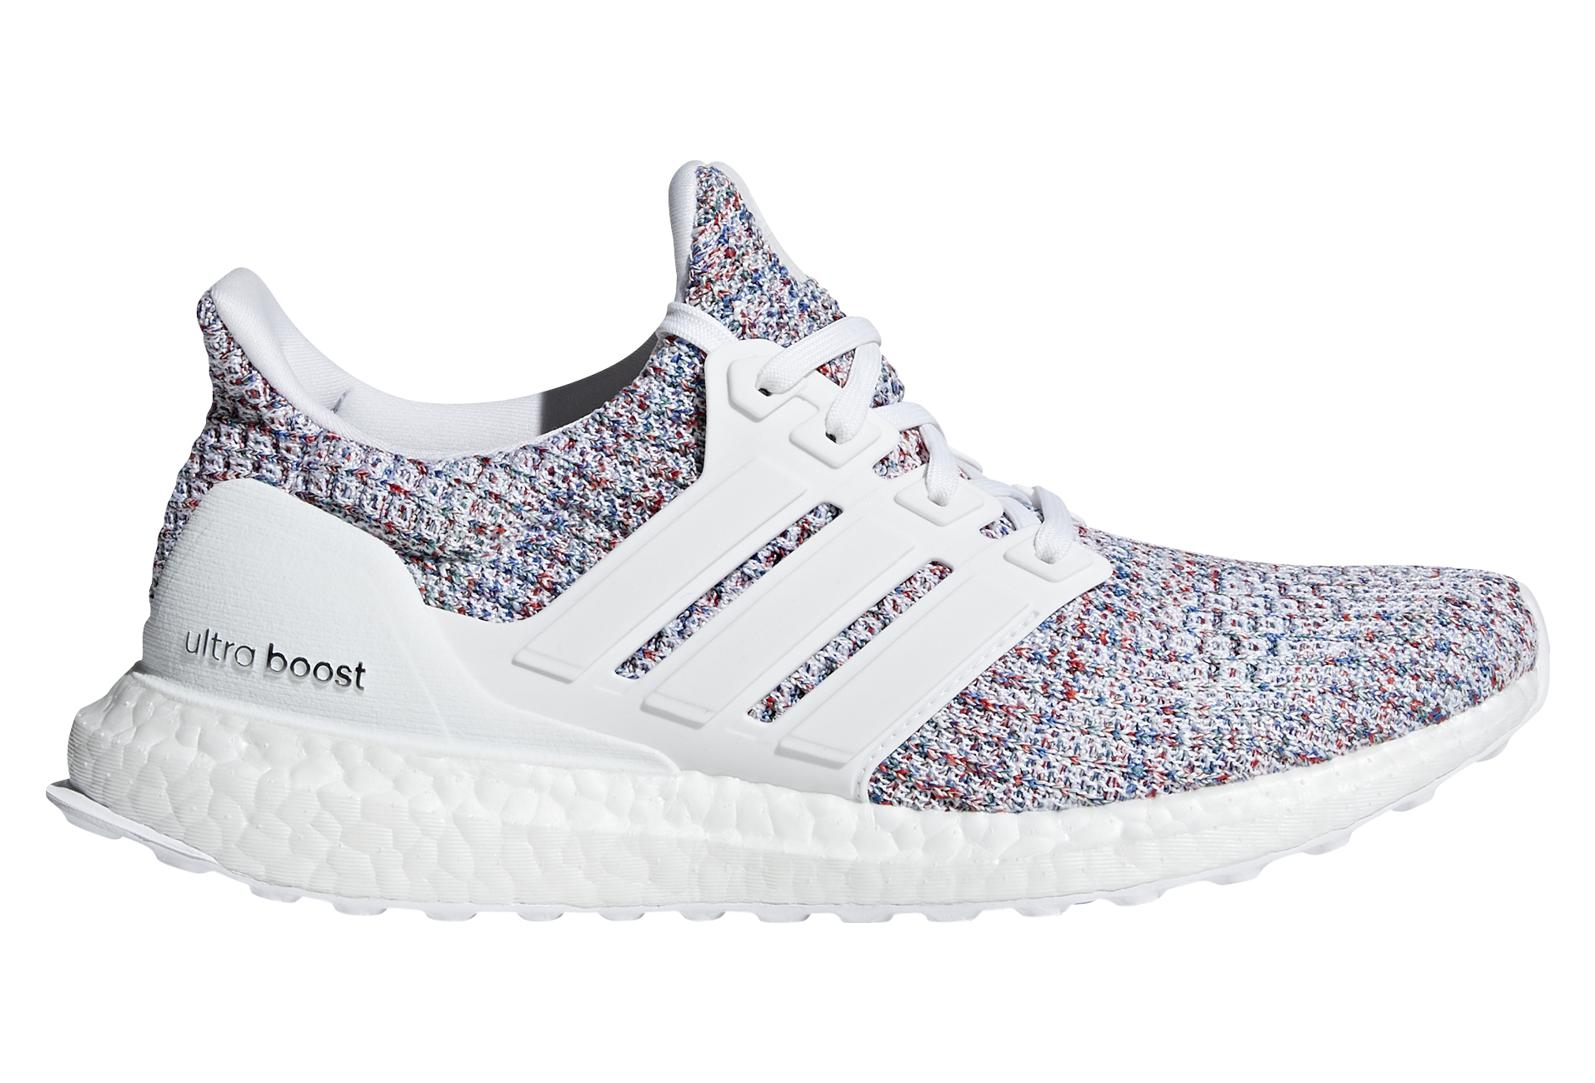 low priced af528 ded8f Scarpe da donna Adidas UltraBOOST Multicolor Bianco